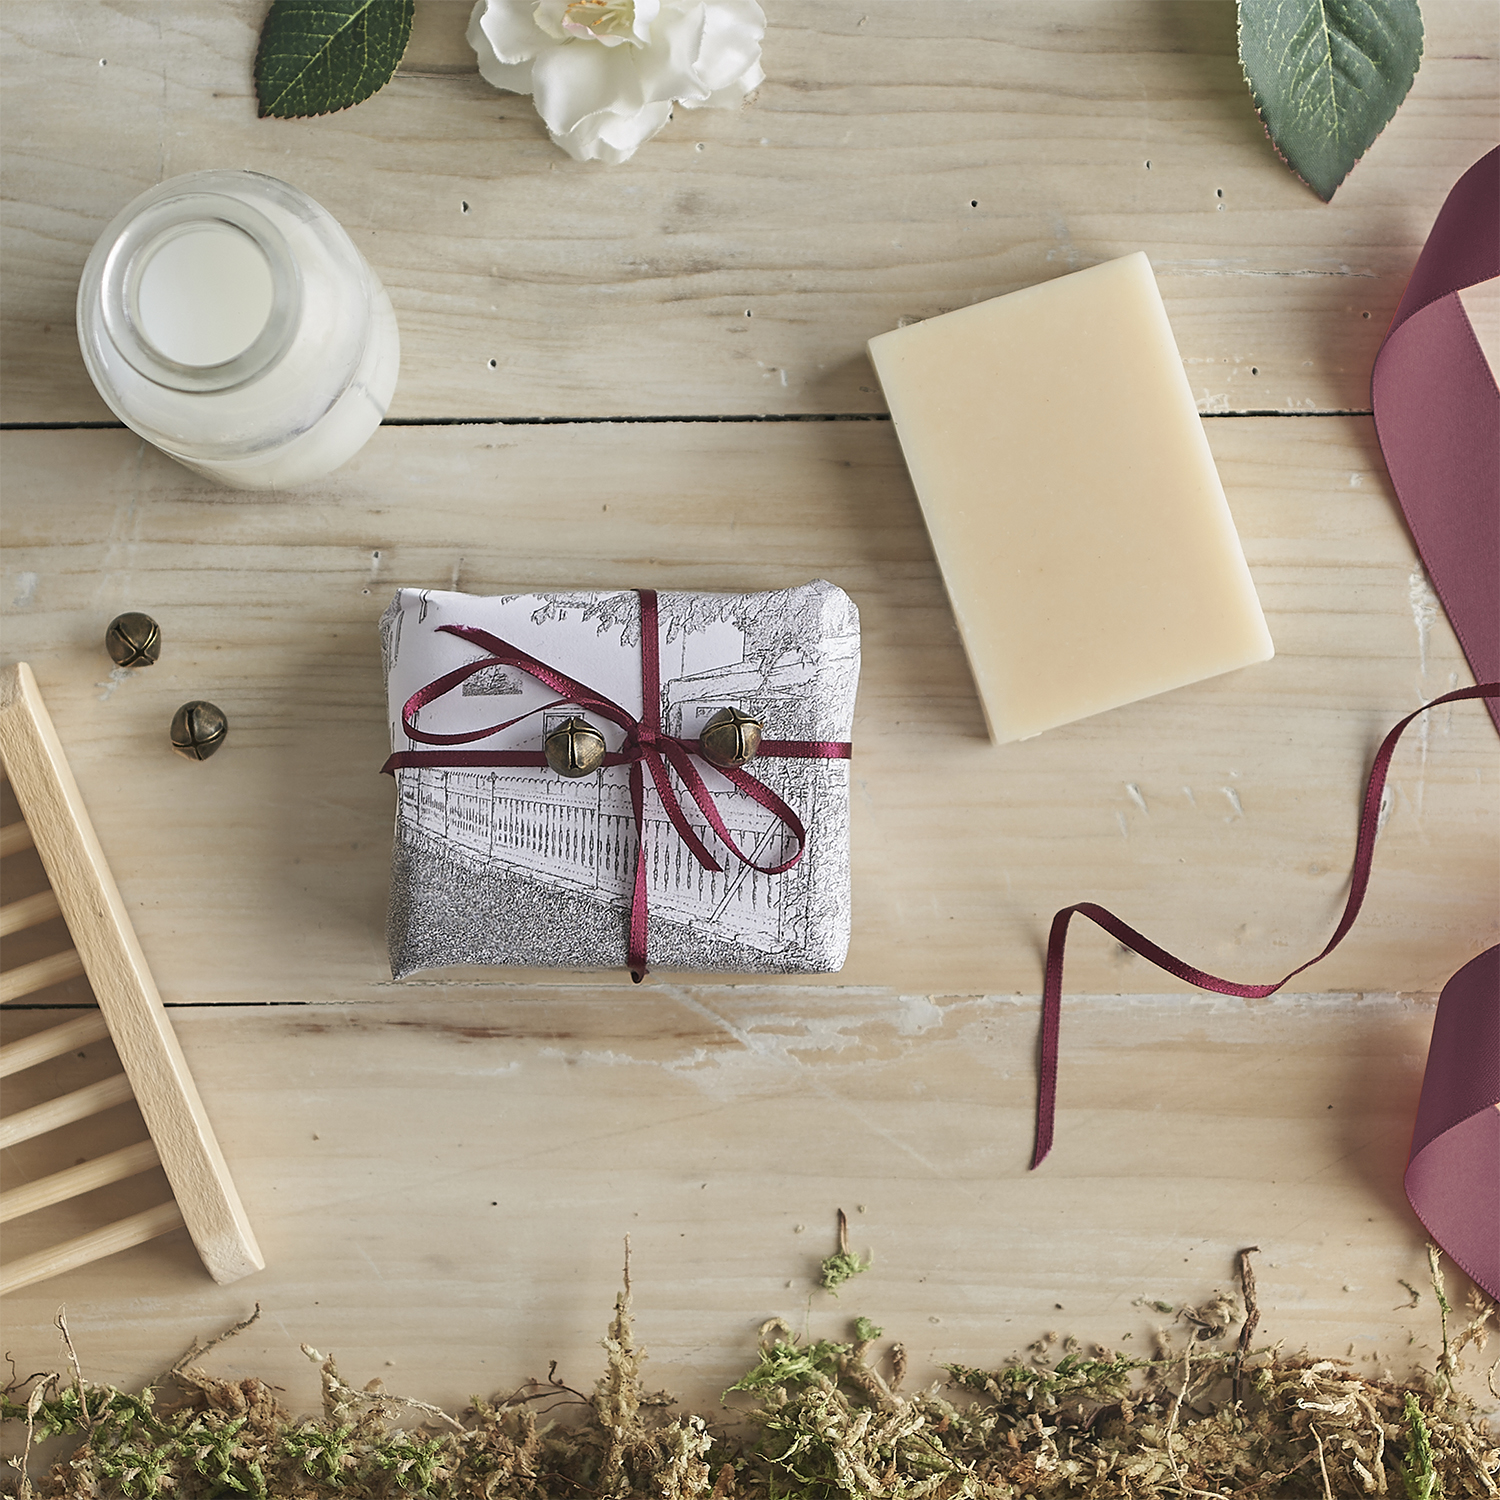 An overhead photograph of packaged handmade soap in a rustic setting